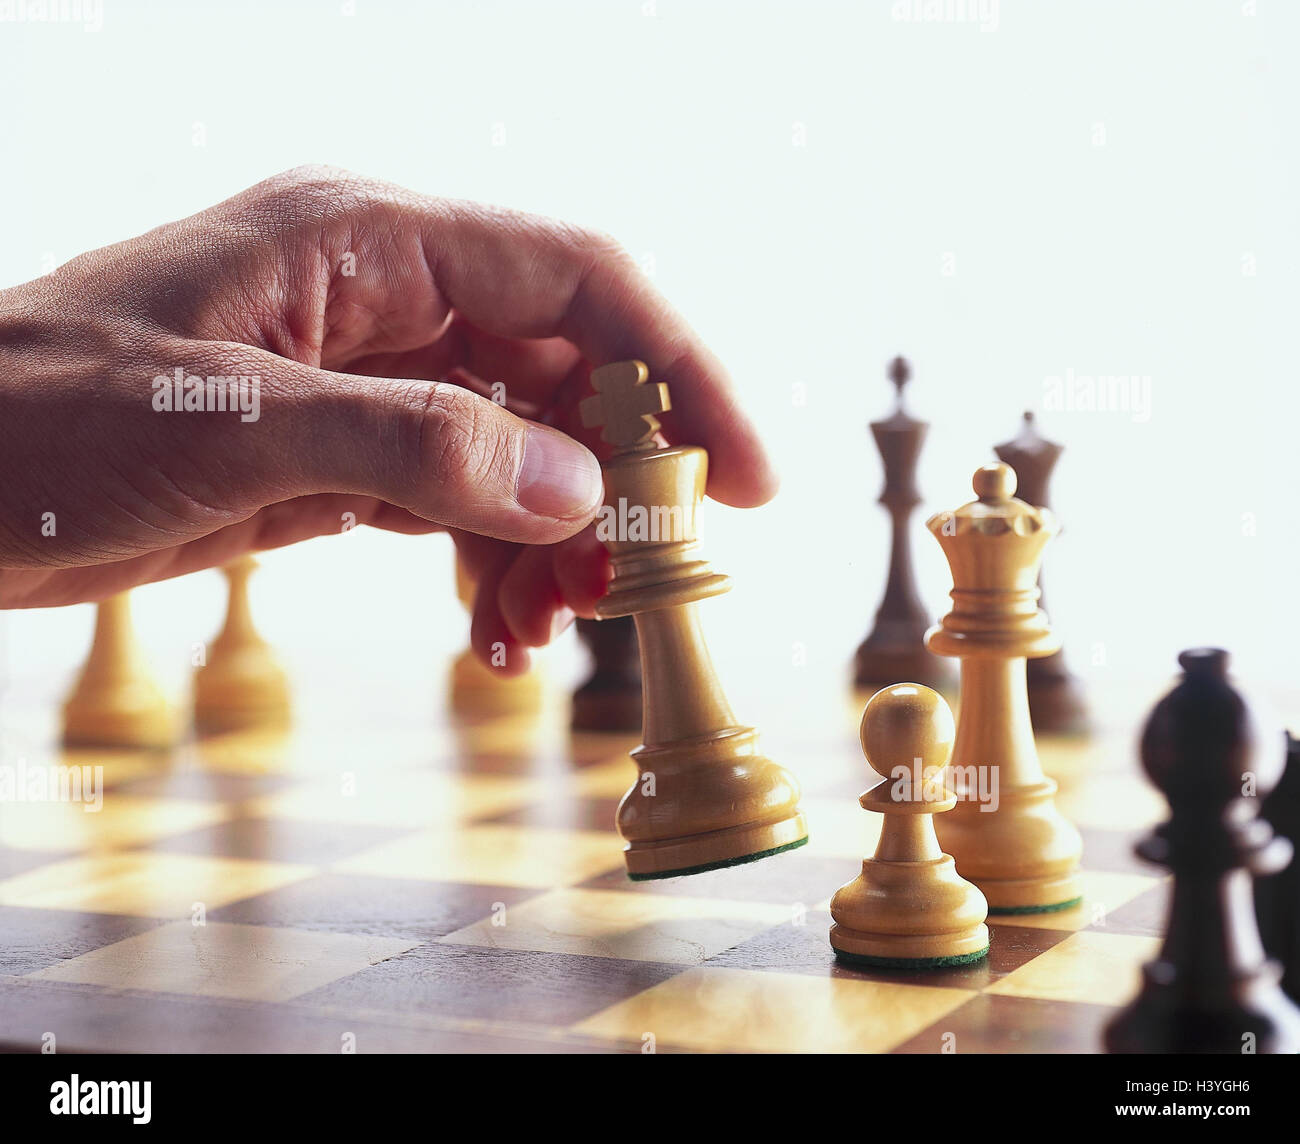 Man's hand, chess game, chess, hand, manoeuvre, figure, chess piece, king, chess pieces, chess springboard, - Stock Image